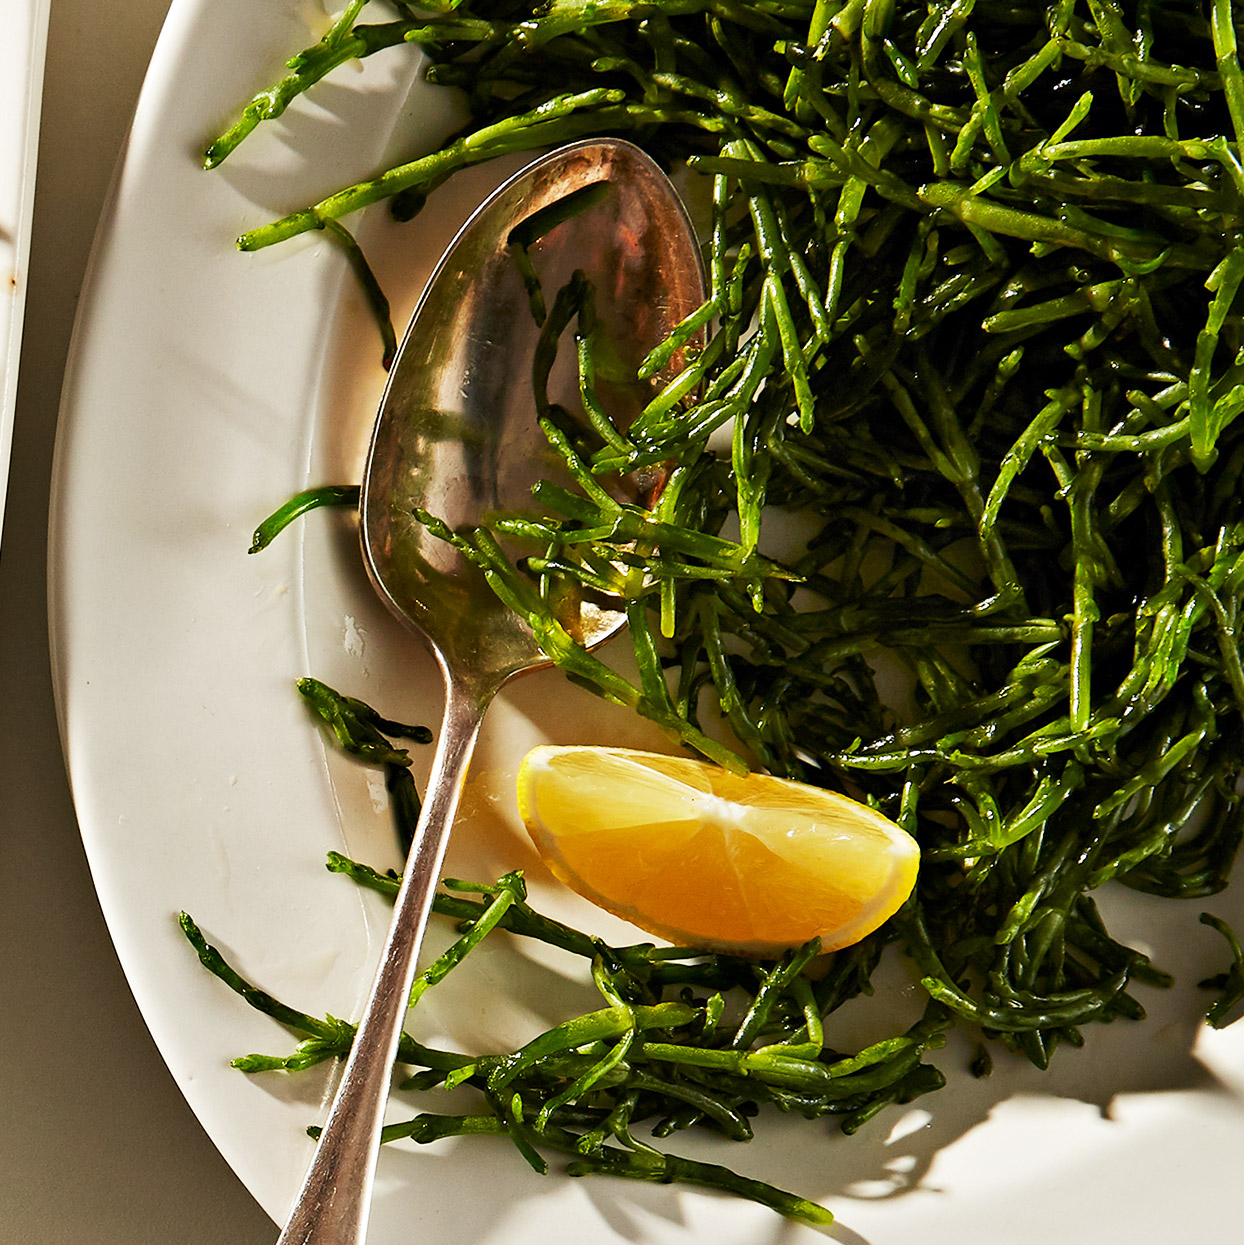 Called sea beans in the U.S., samphire is crunchy seaweed that adds brininess to dishes and can be eaten raw or cooked. Look for it in gourmet markets or fish markets or order online at melissas.com. Source: EatingWell Magazine, March 2020